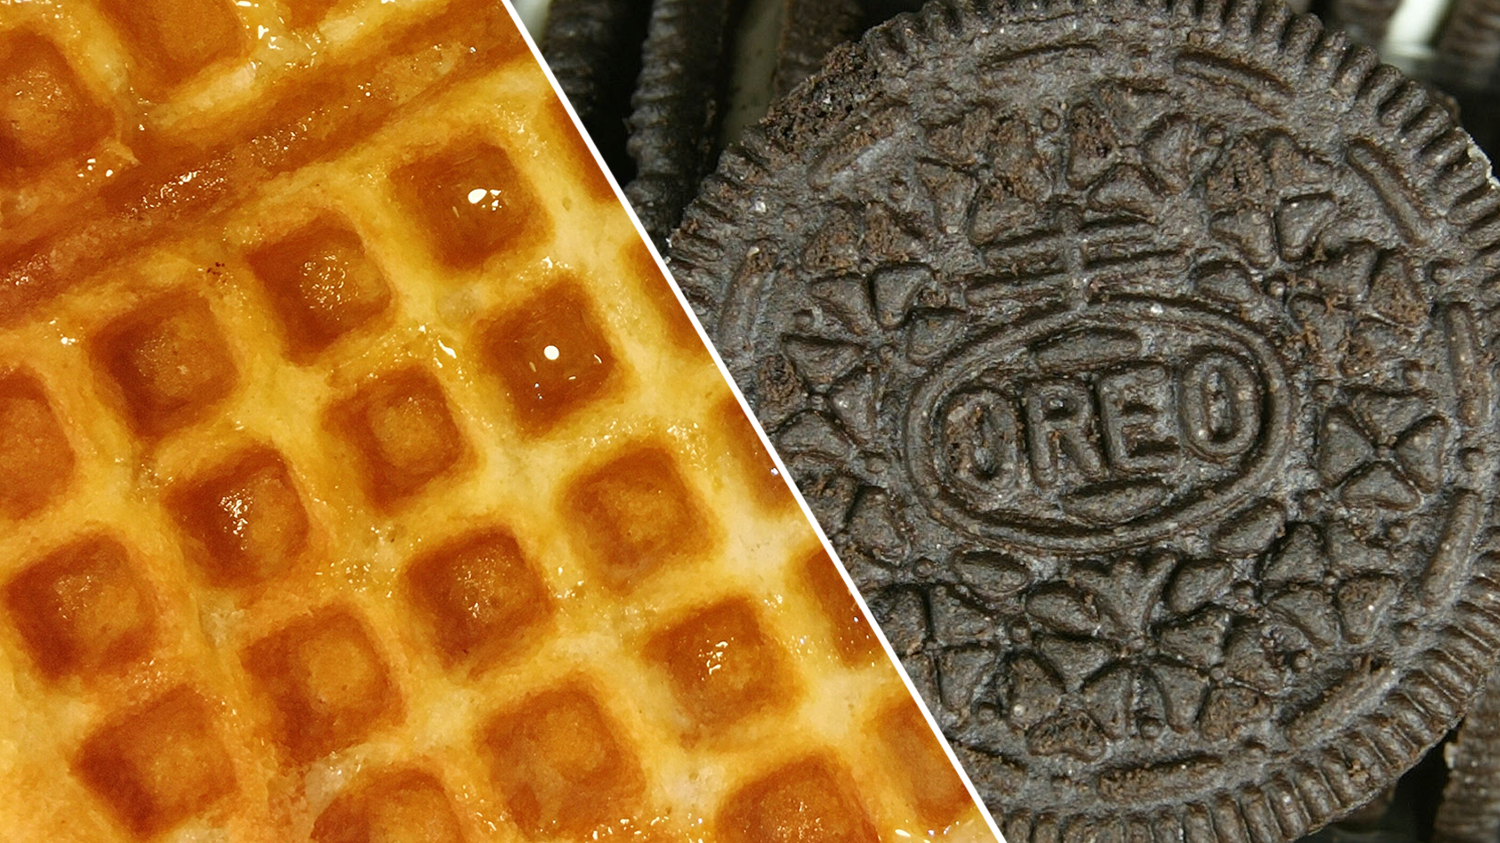 Oreos For Breakfast? Waffle & Syrup Flavored Oreos Are Here